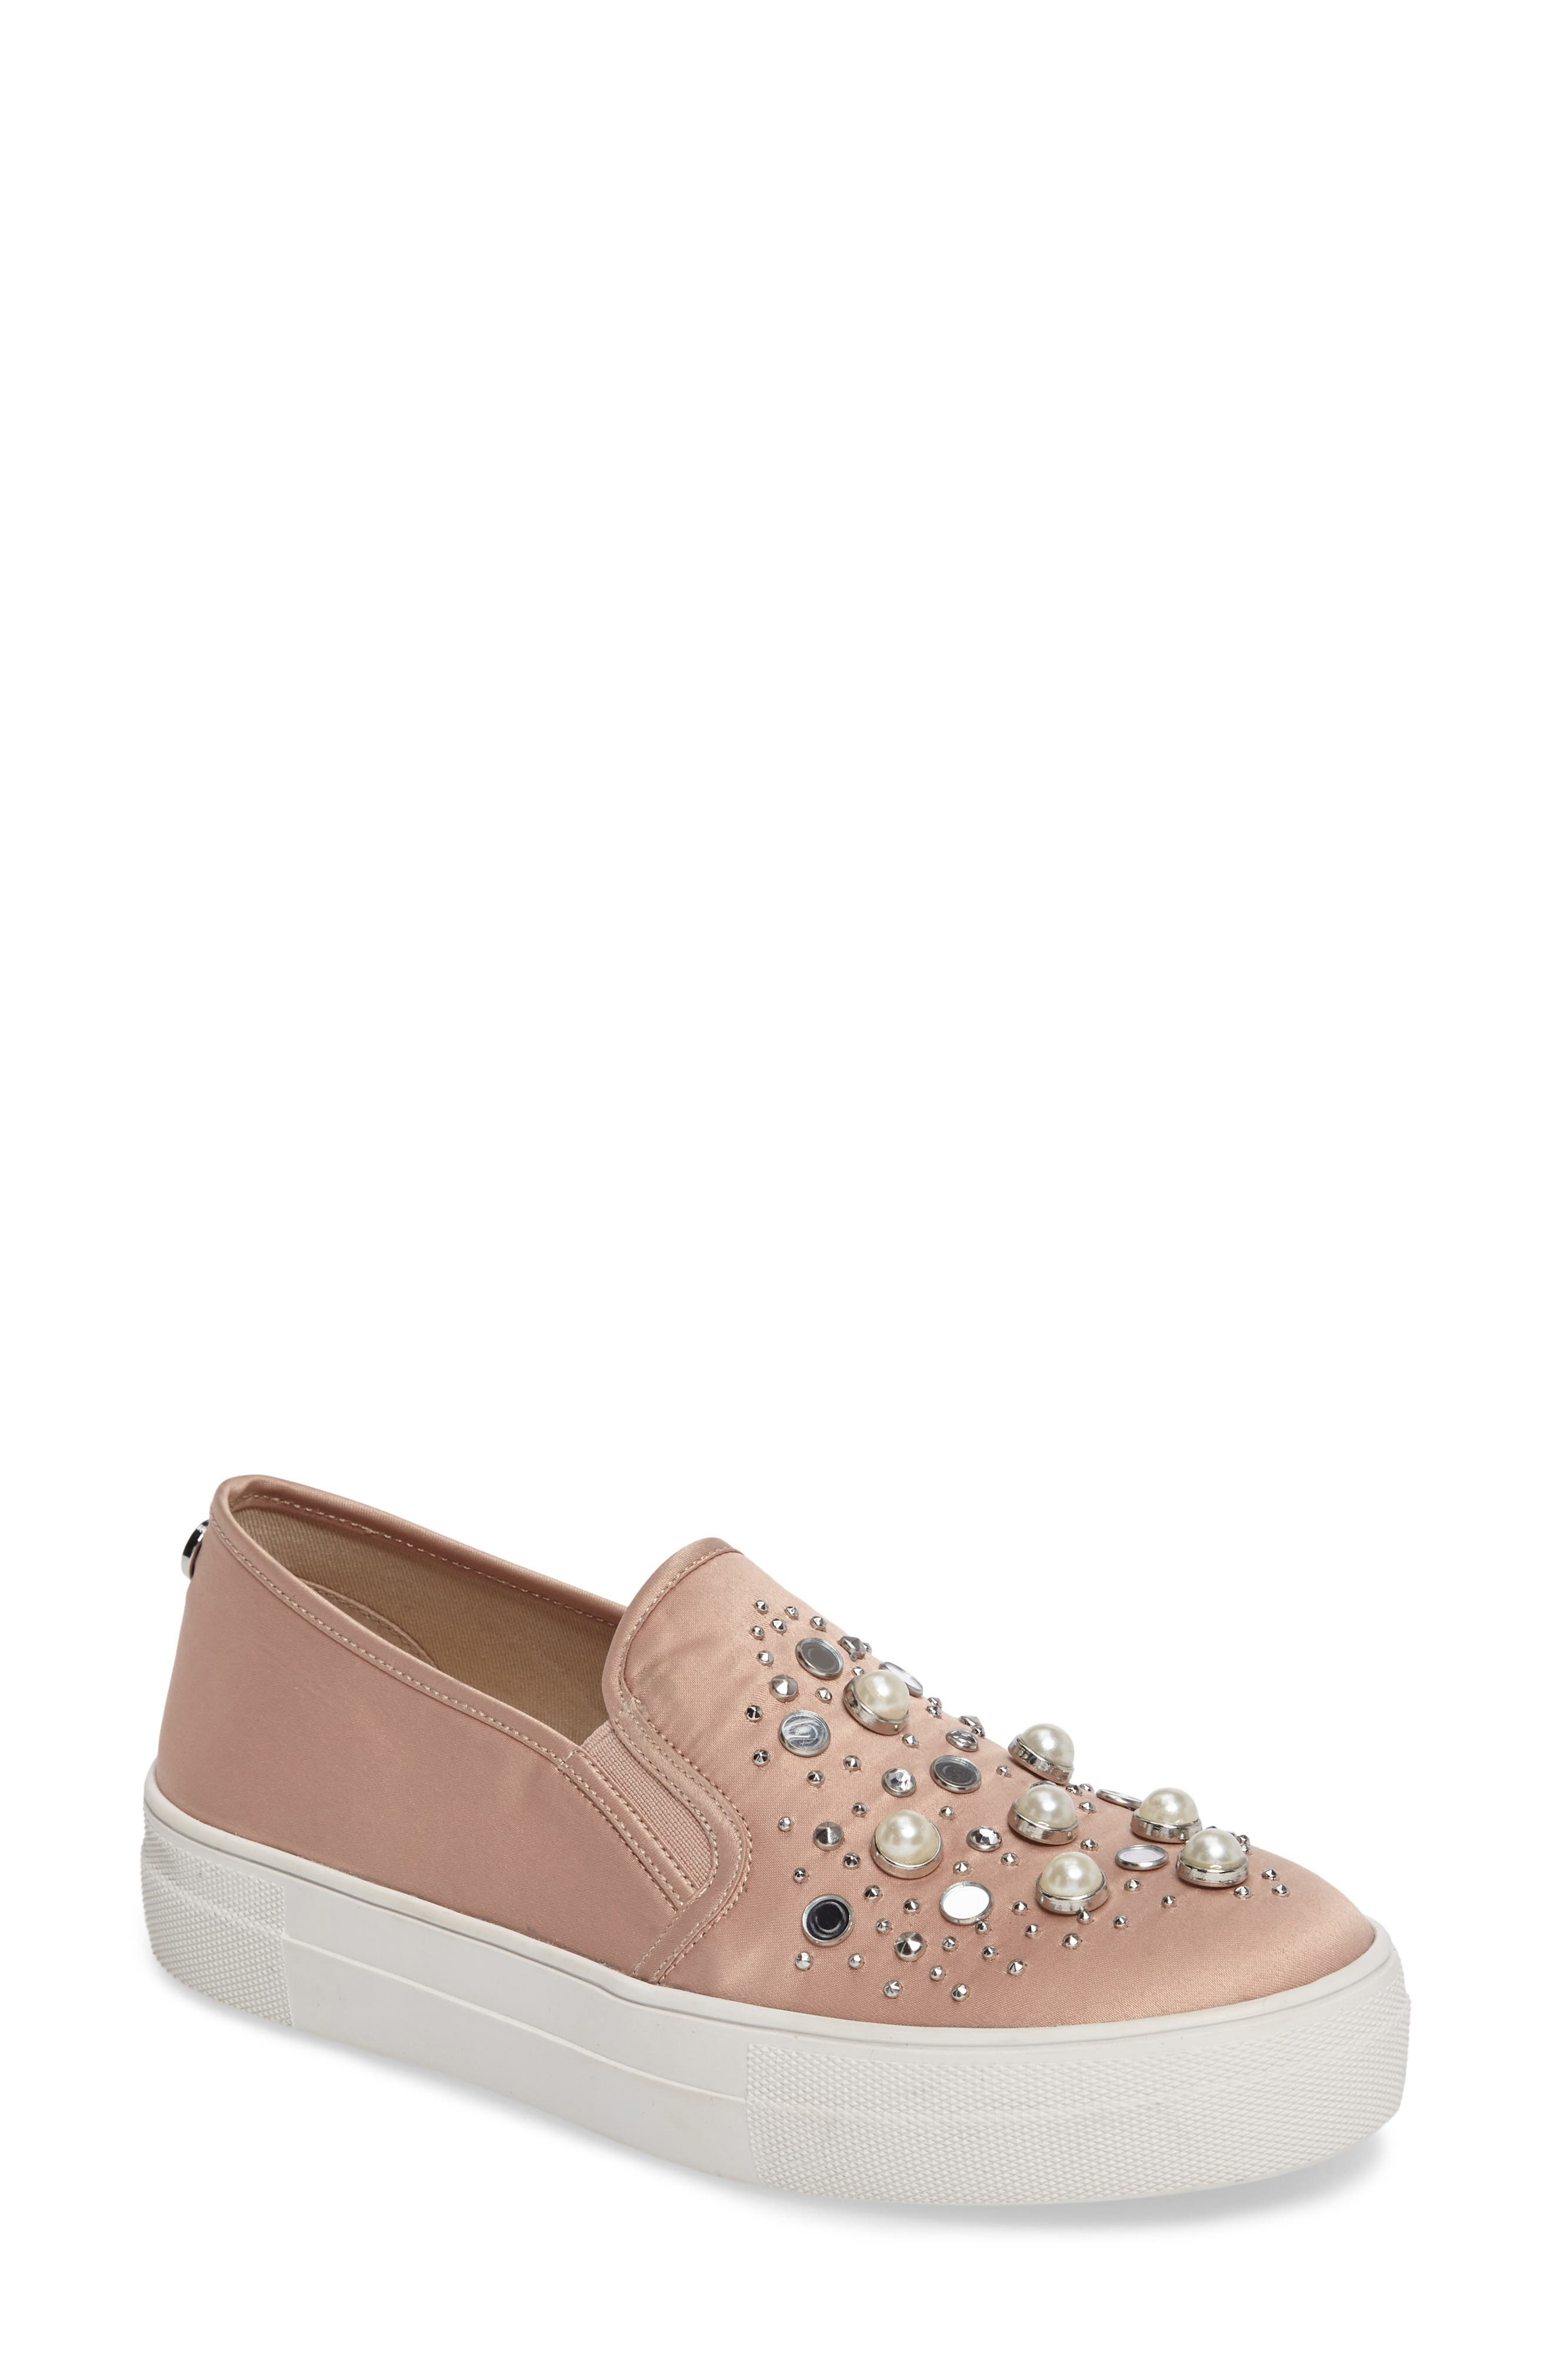 Glade Embellished Slip-On Sneaker,                         Main,                         color, Blush Satin